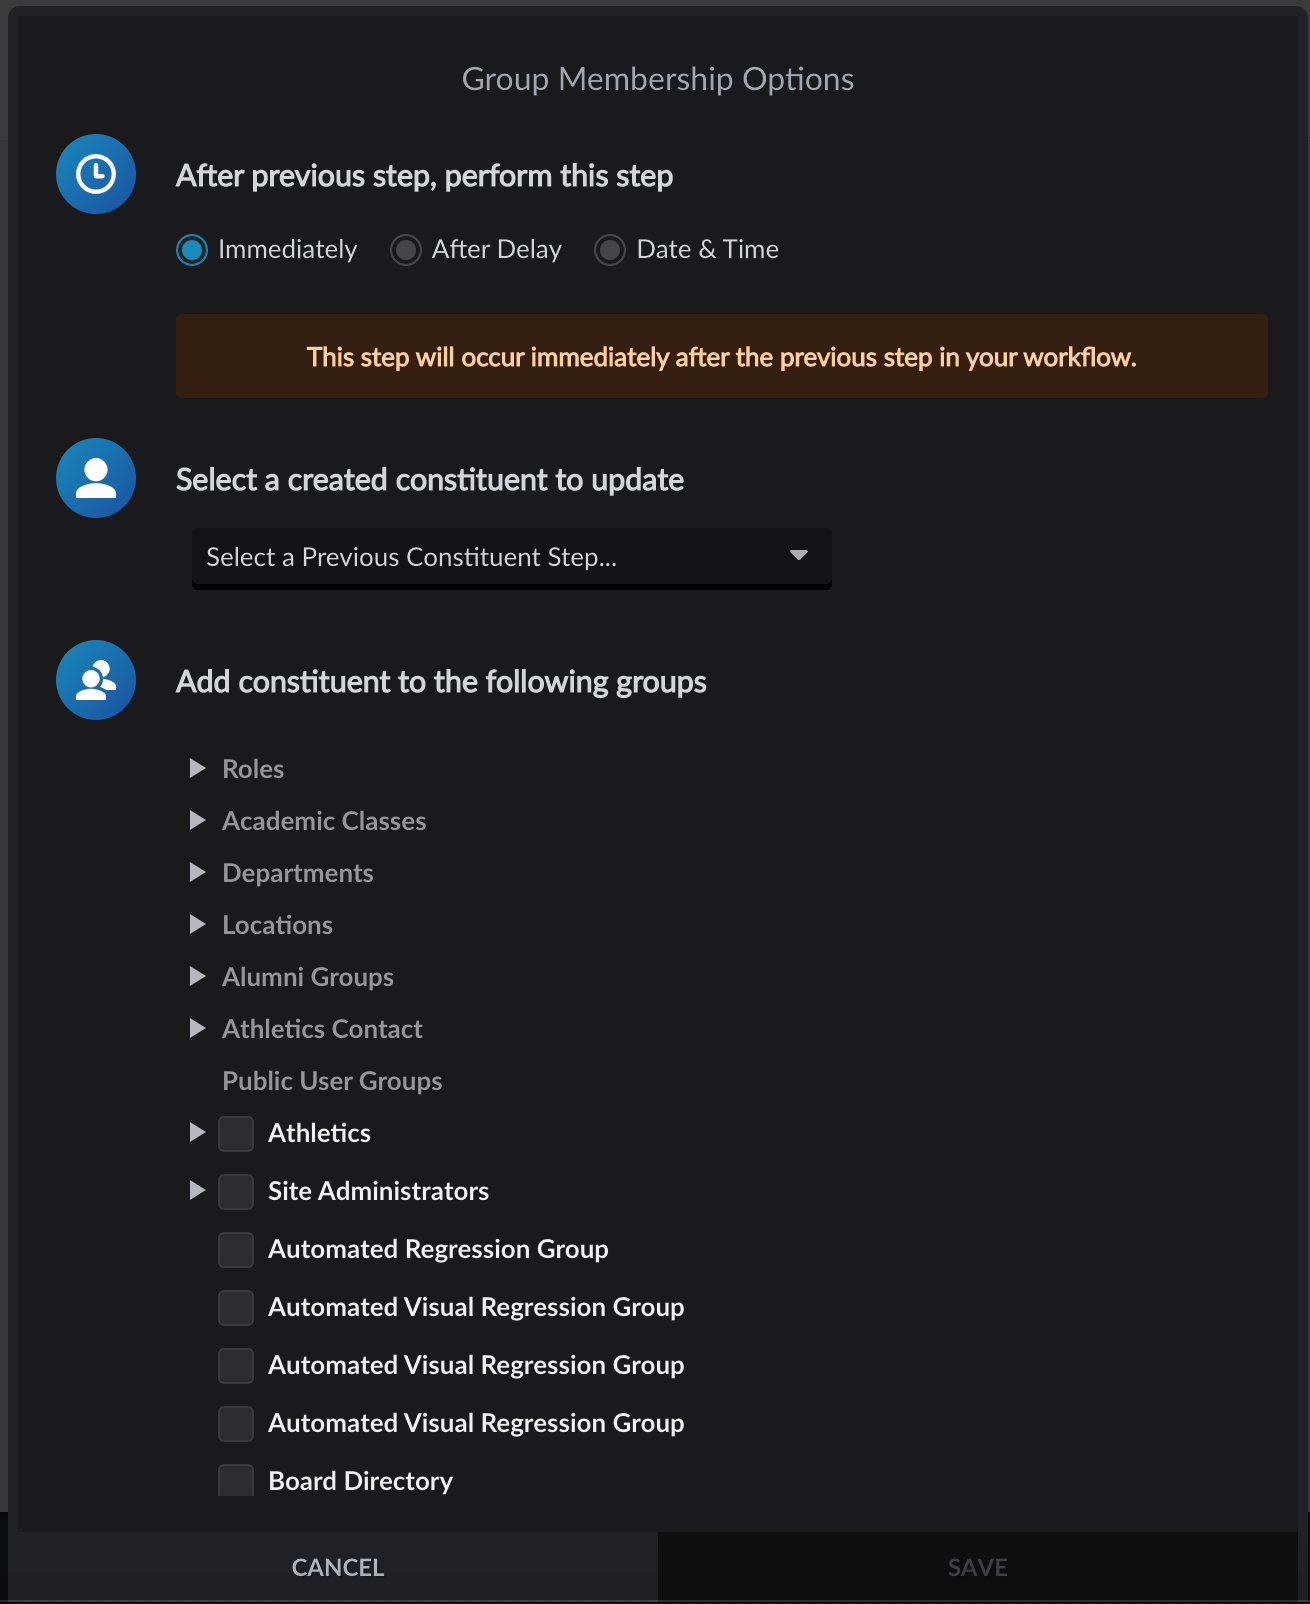 Group Membership options menu in Form workflow